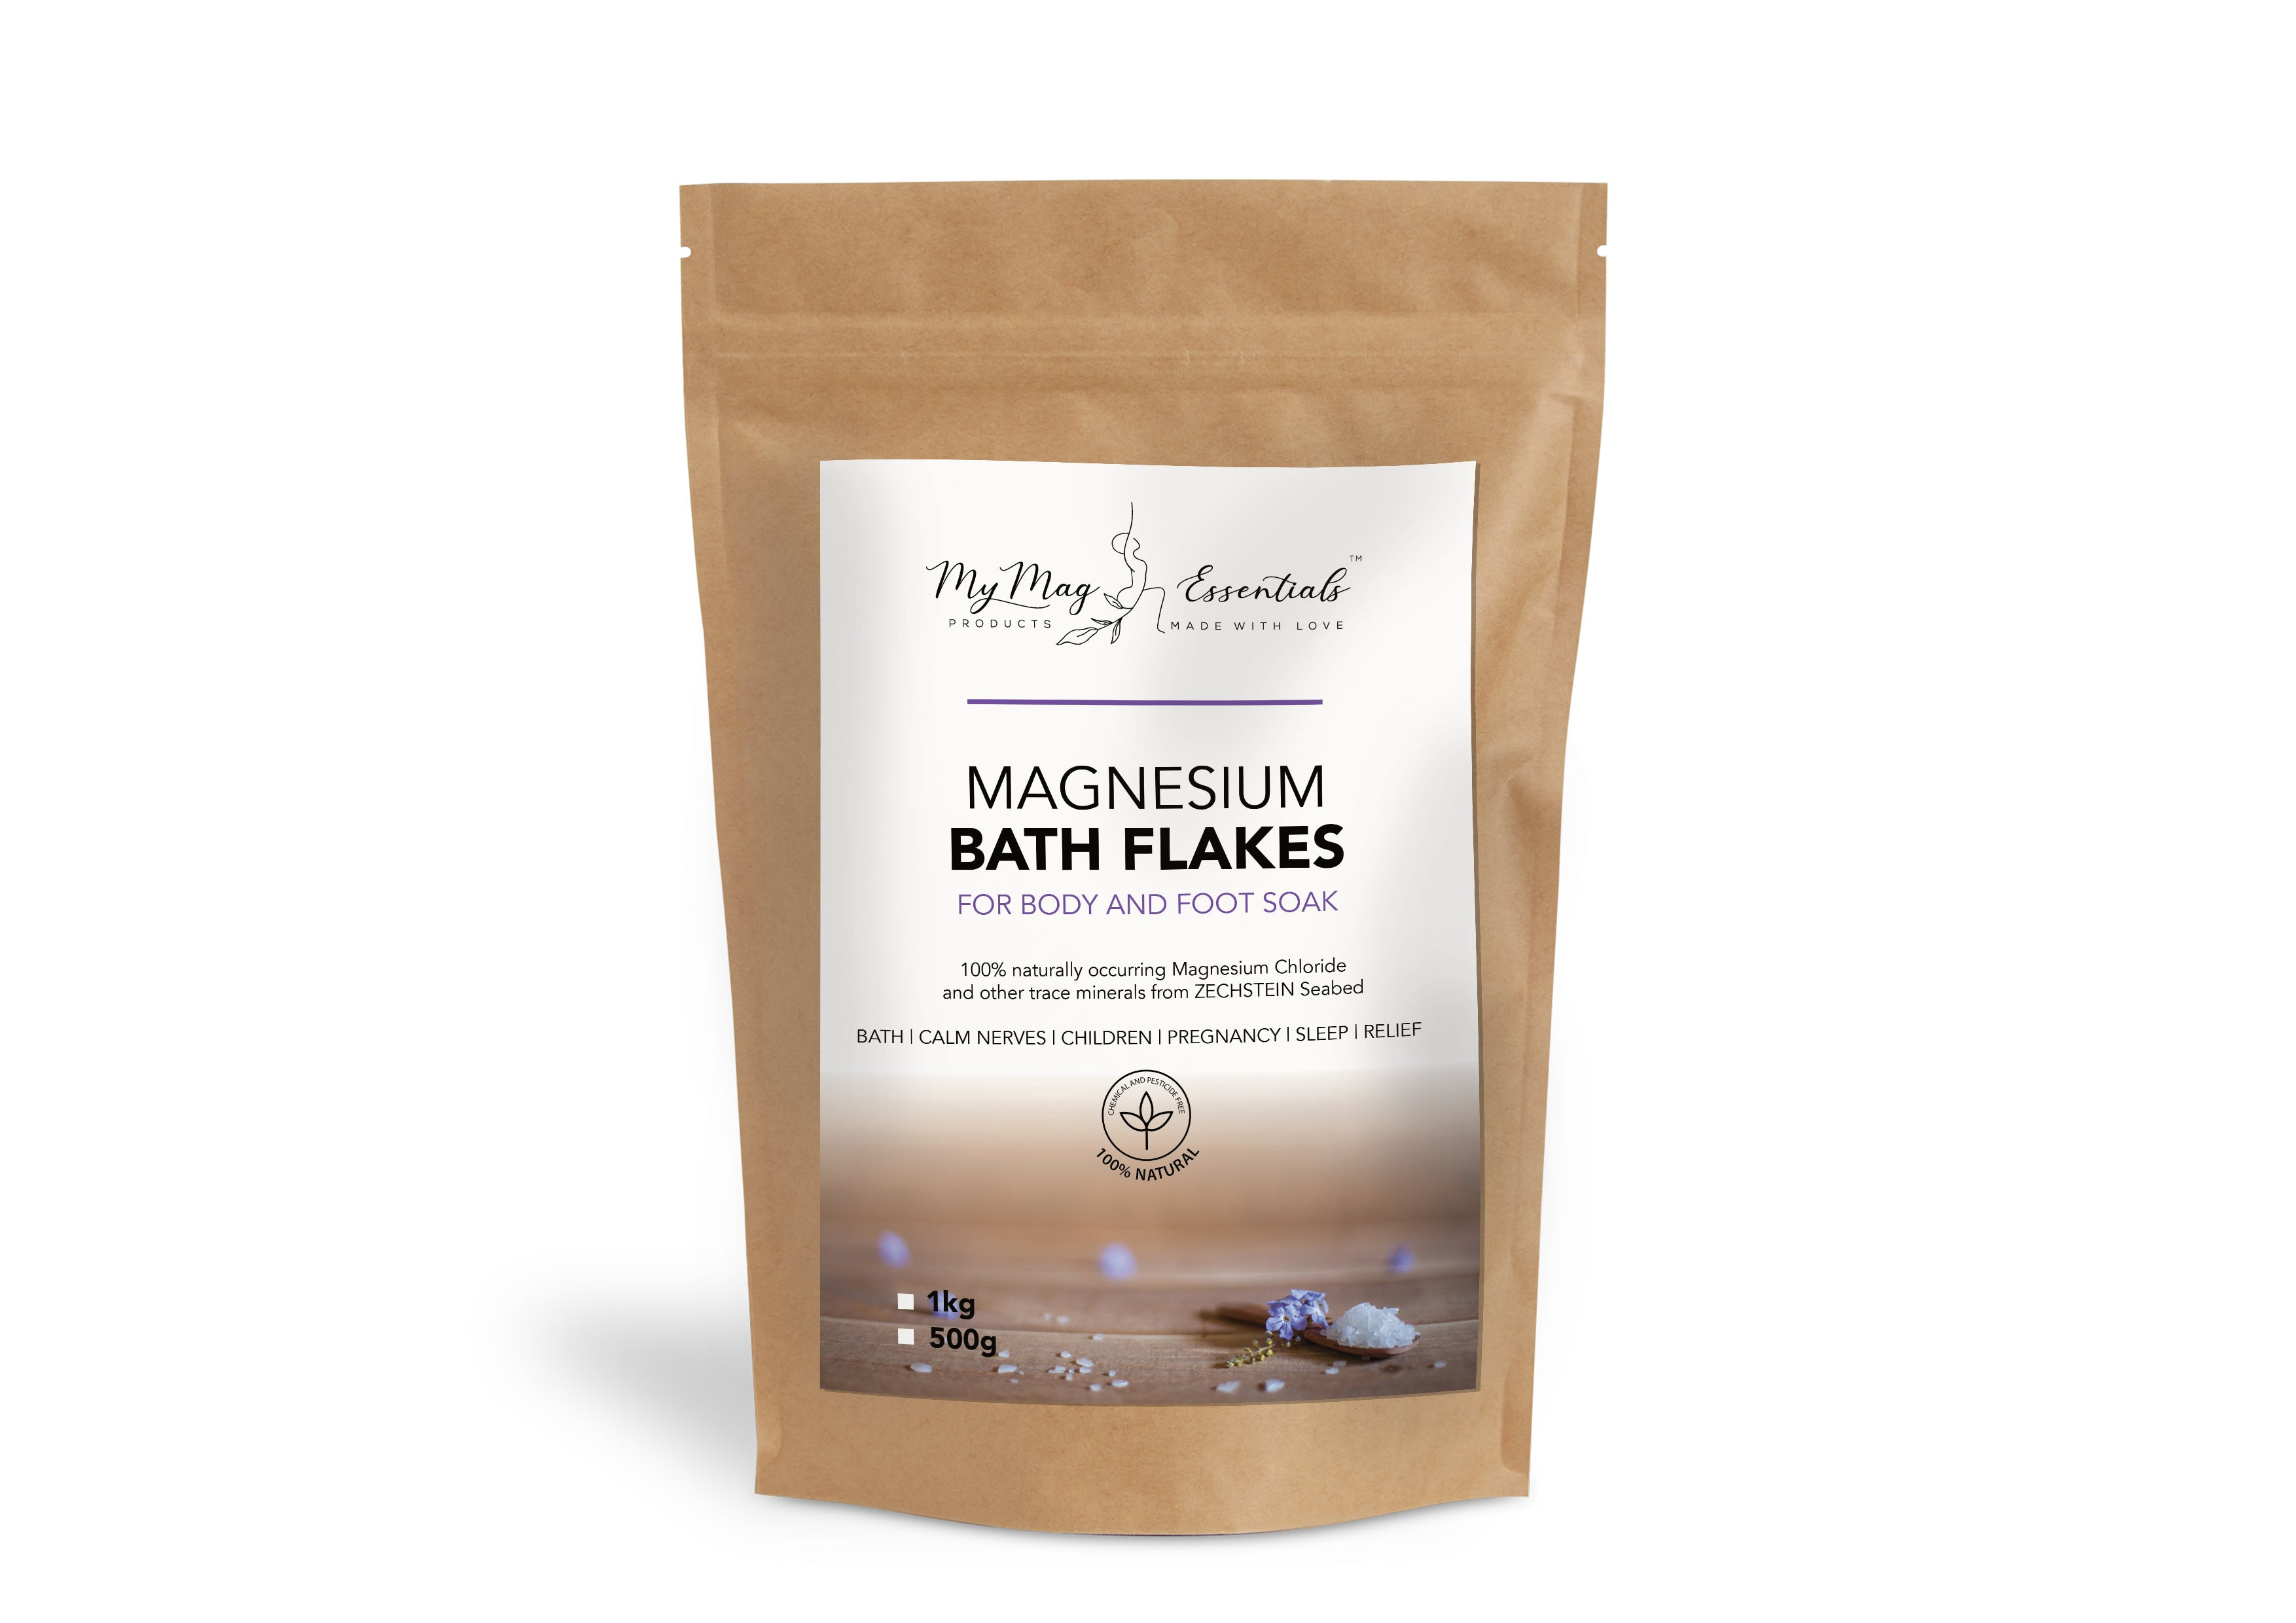 Magnesium Bath Flakes for Body and Foot Soaks 500g Bag